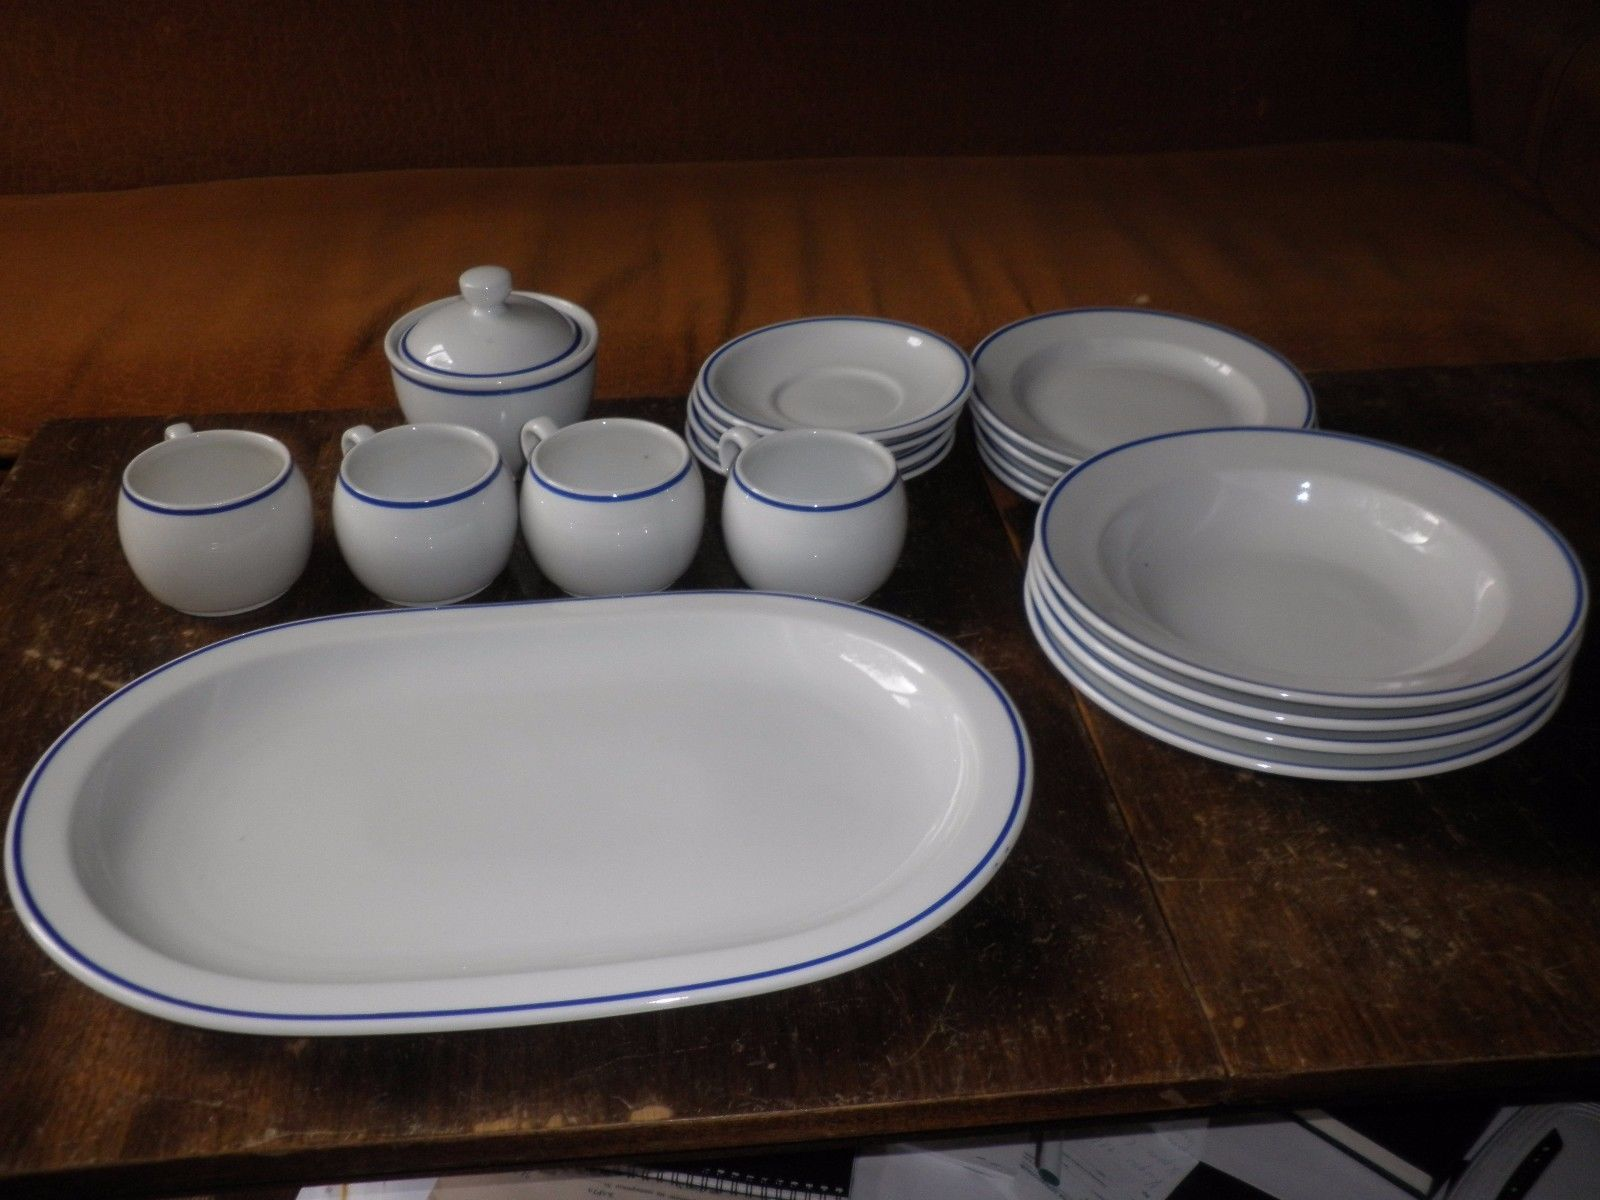 ROSENTHAL PORCELAIN SET DAF WW2 GERMAN ORIGINAL 18 pieces & Rosenthal Porcelain Set Daf Ww2 German and 50 similar items